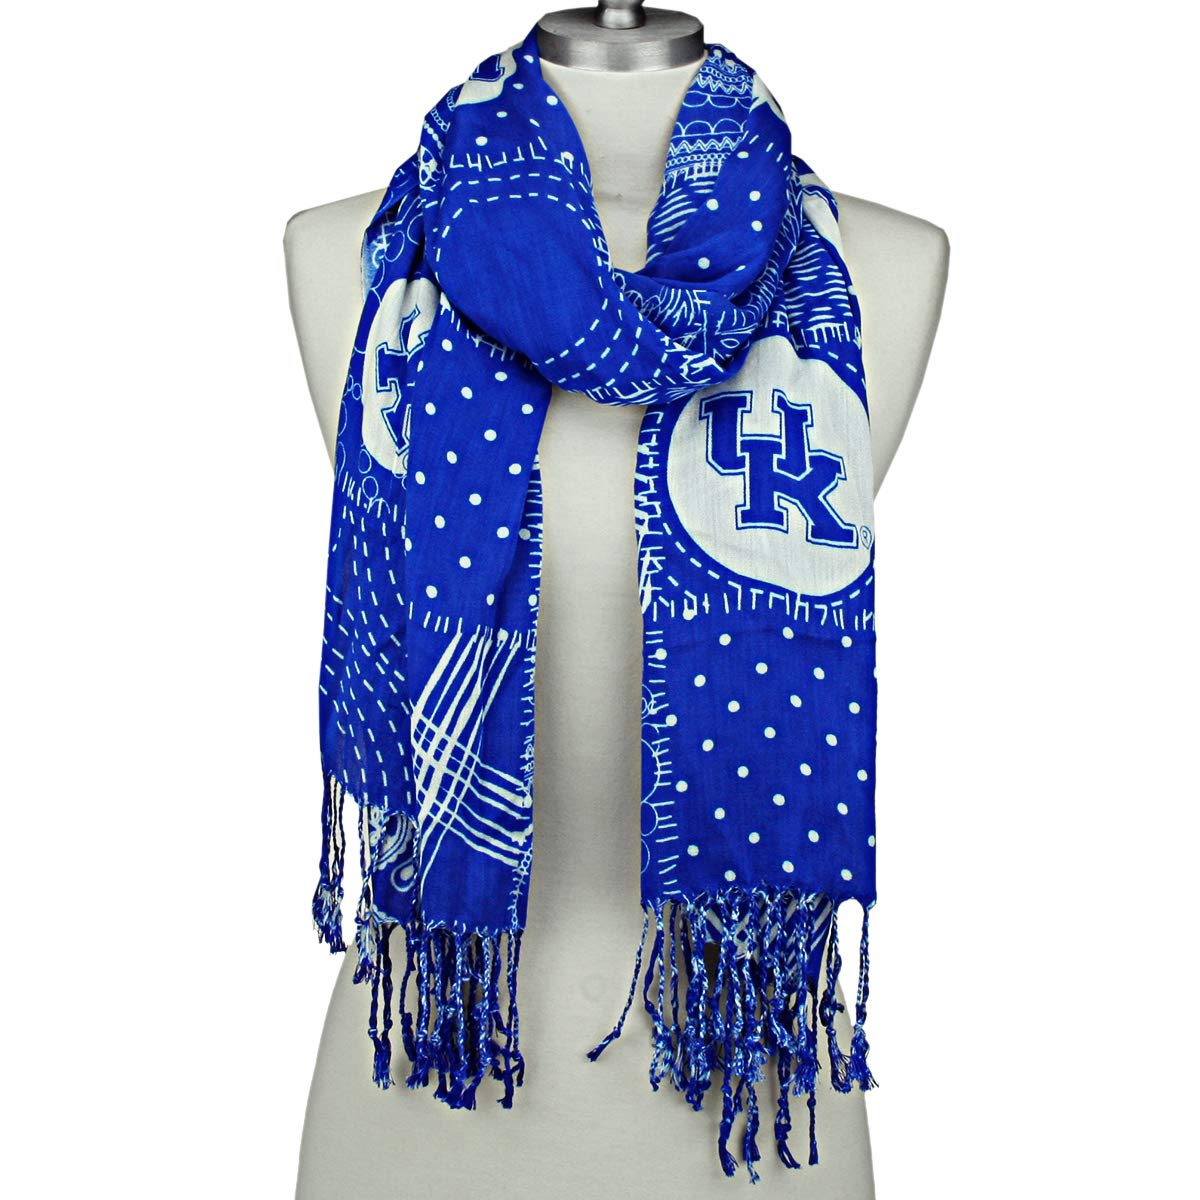 Kentucky Wildcats Mixed Print Scarf